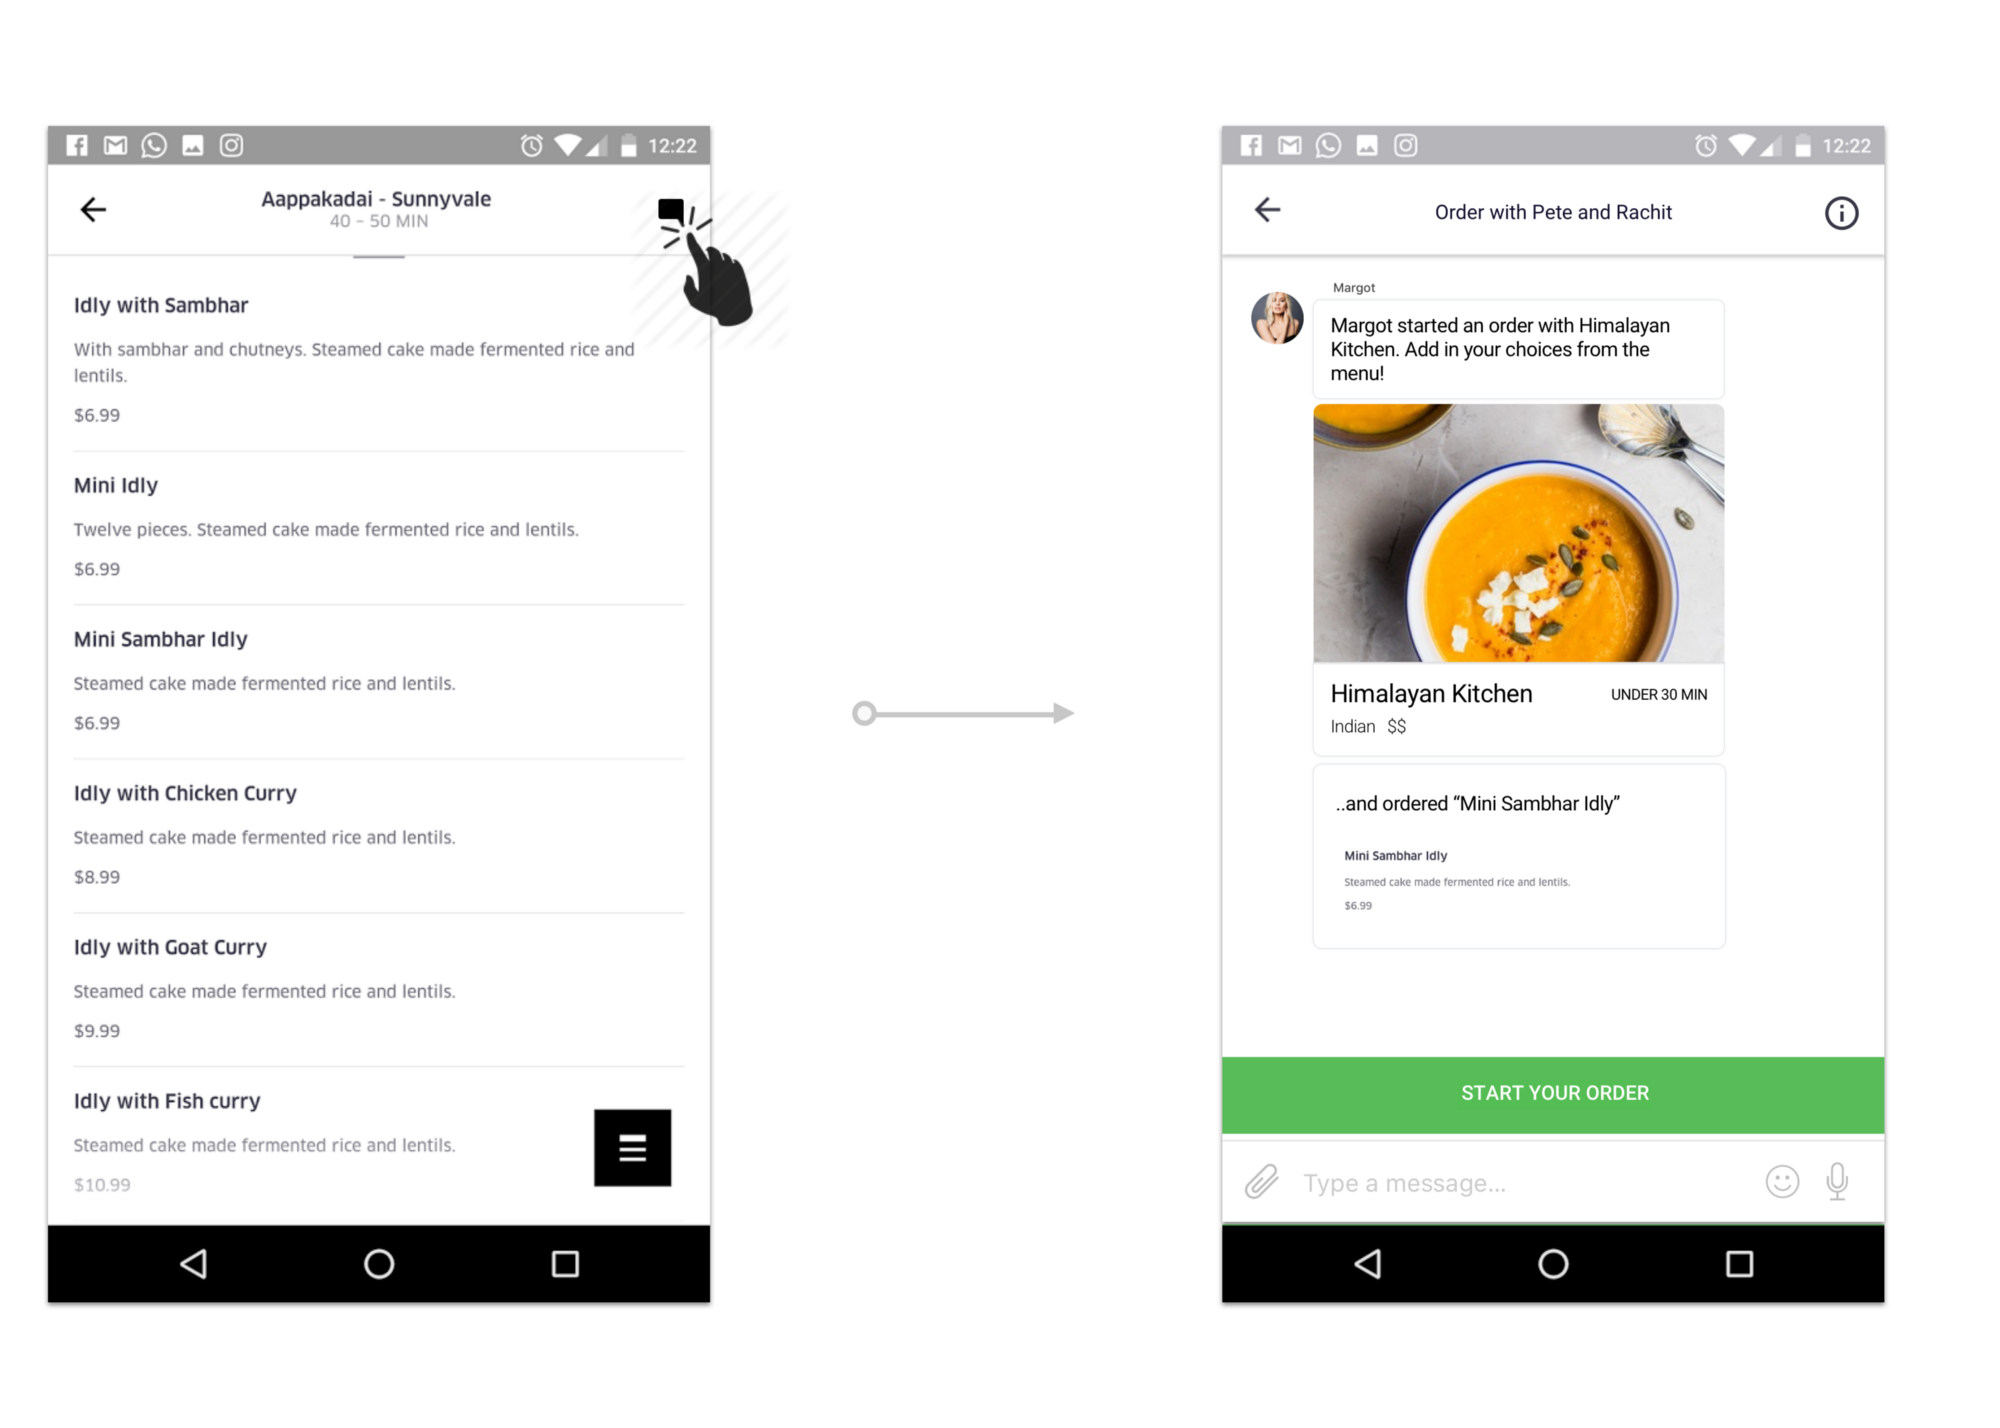 How UberEats could make ordering for groups of friends simpler — a